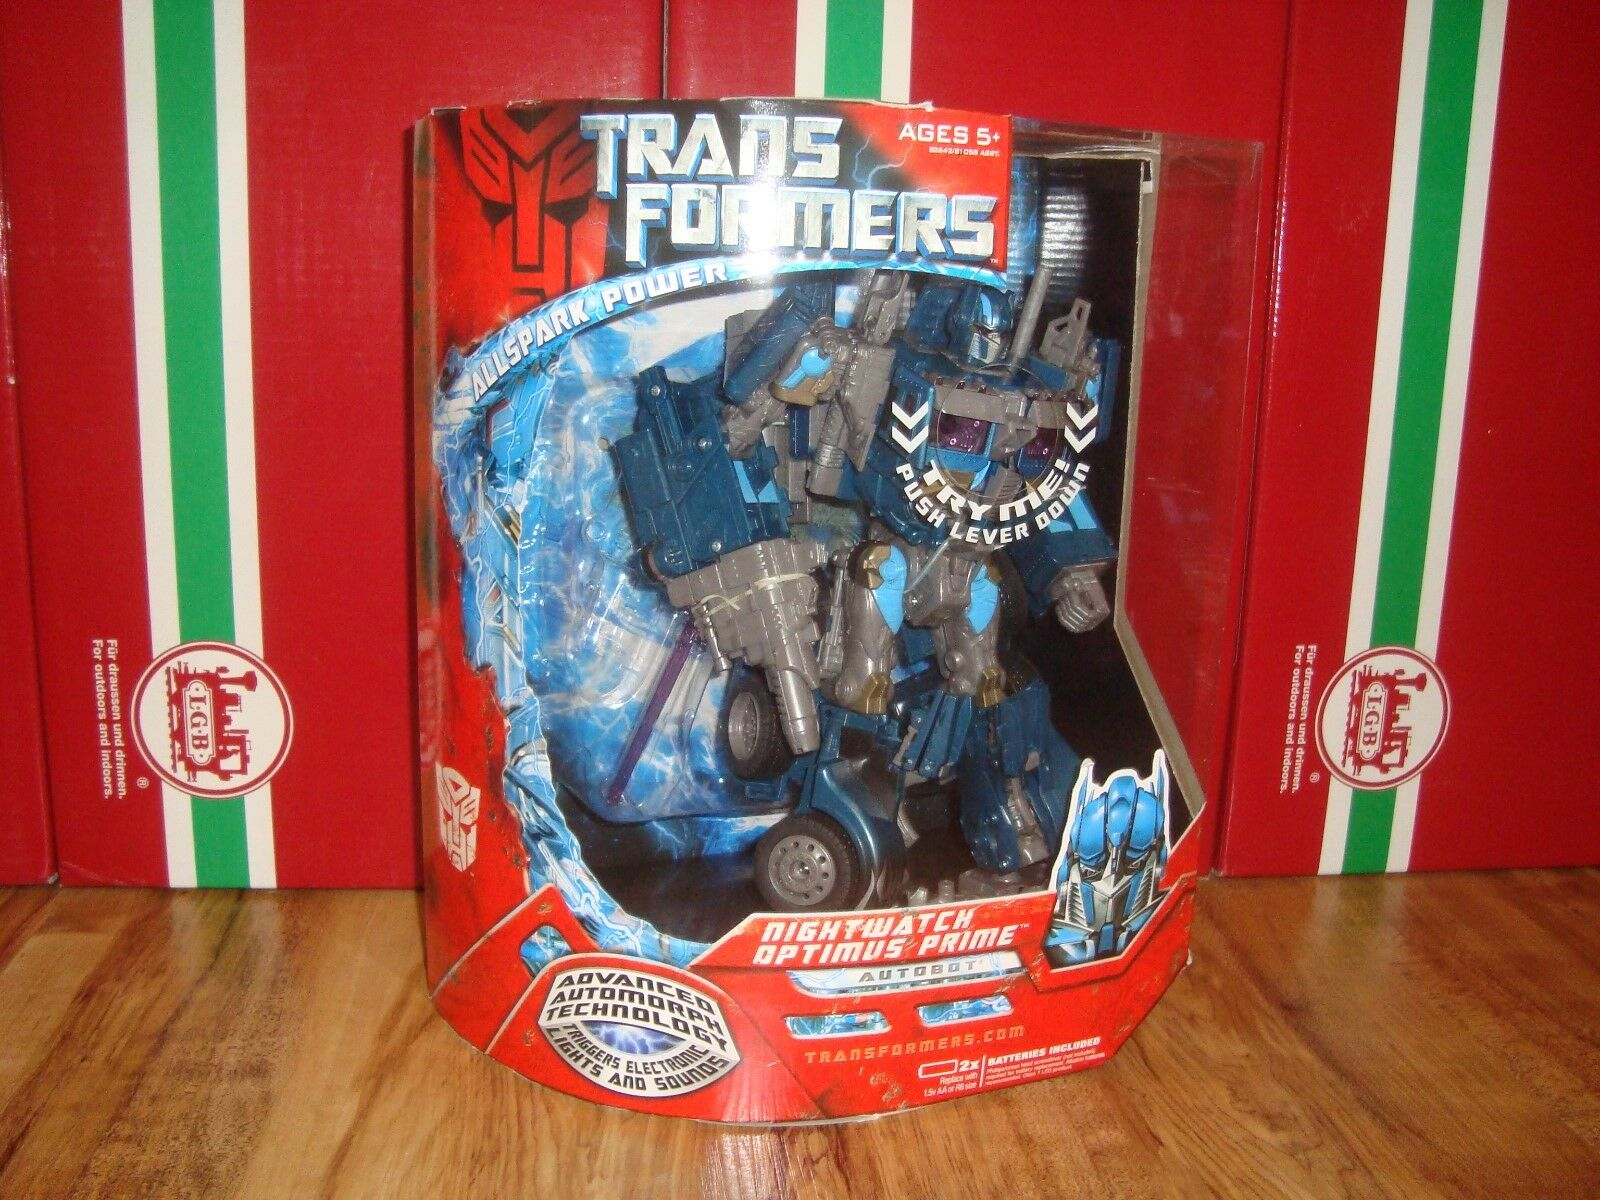 HASBRO TRANSFORMERS NIGHTWATCH OPTIMUS PRIME MINT IN SEALED BOX